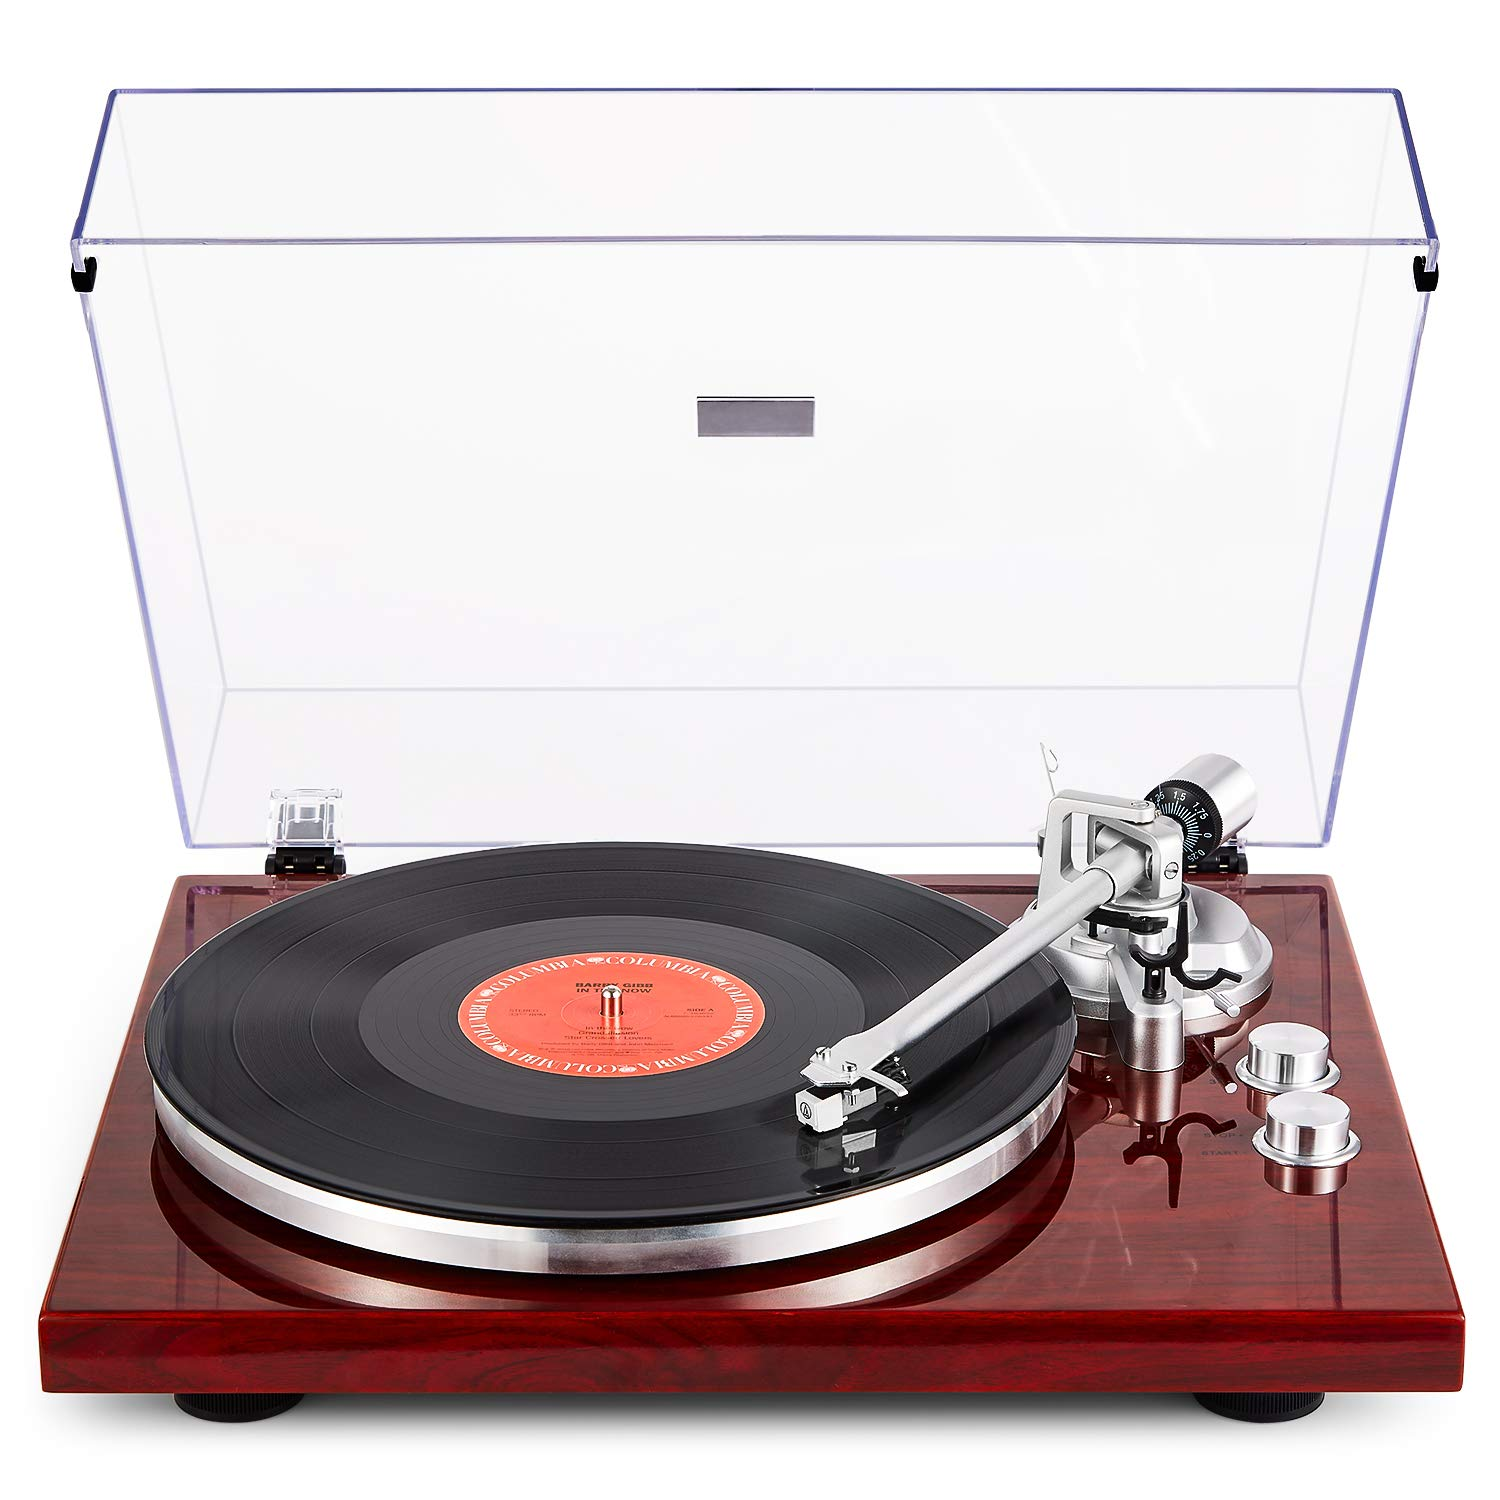 1byone Turntable with Wireless Connectivity, Built-in Phono Pre-Amplifier & USB Digital Output Vinyl Record Player with Magnetic Cartridge, Red by 1 BY ONE